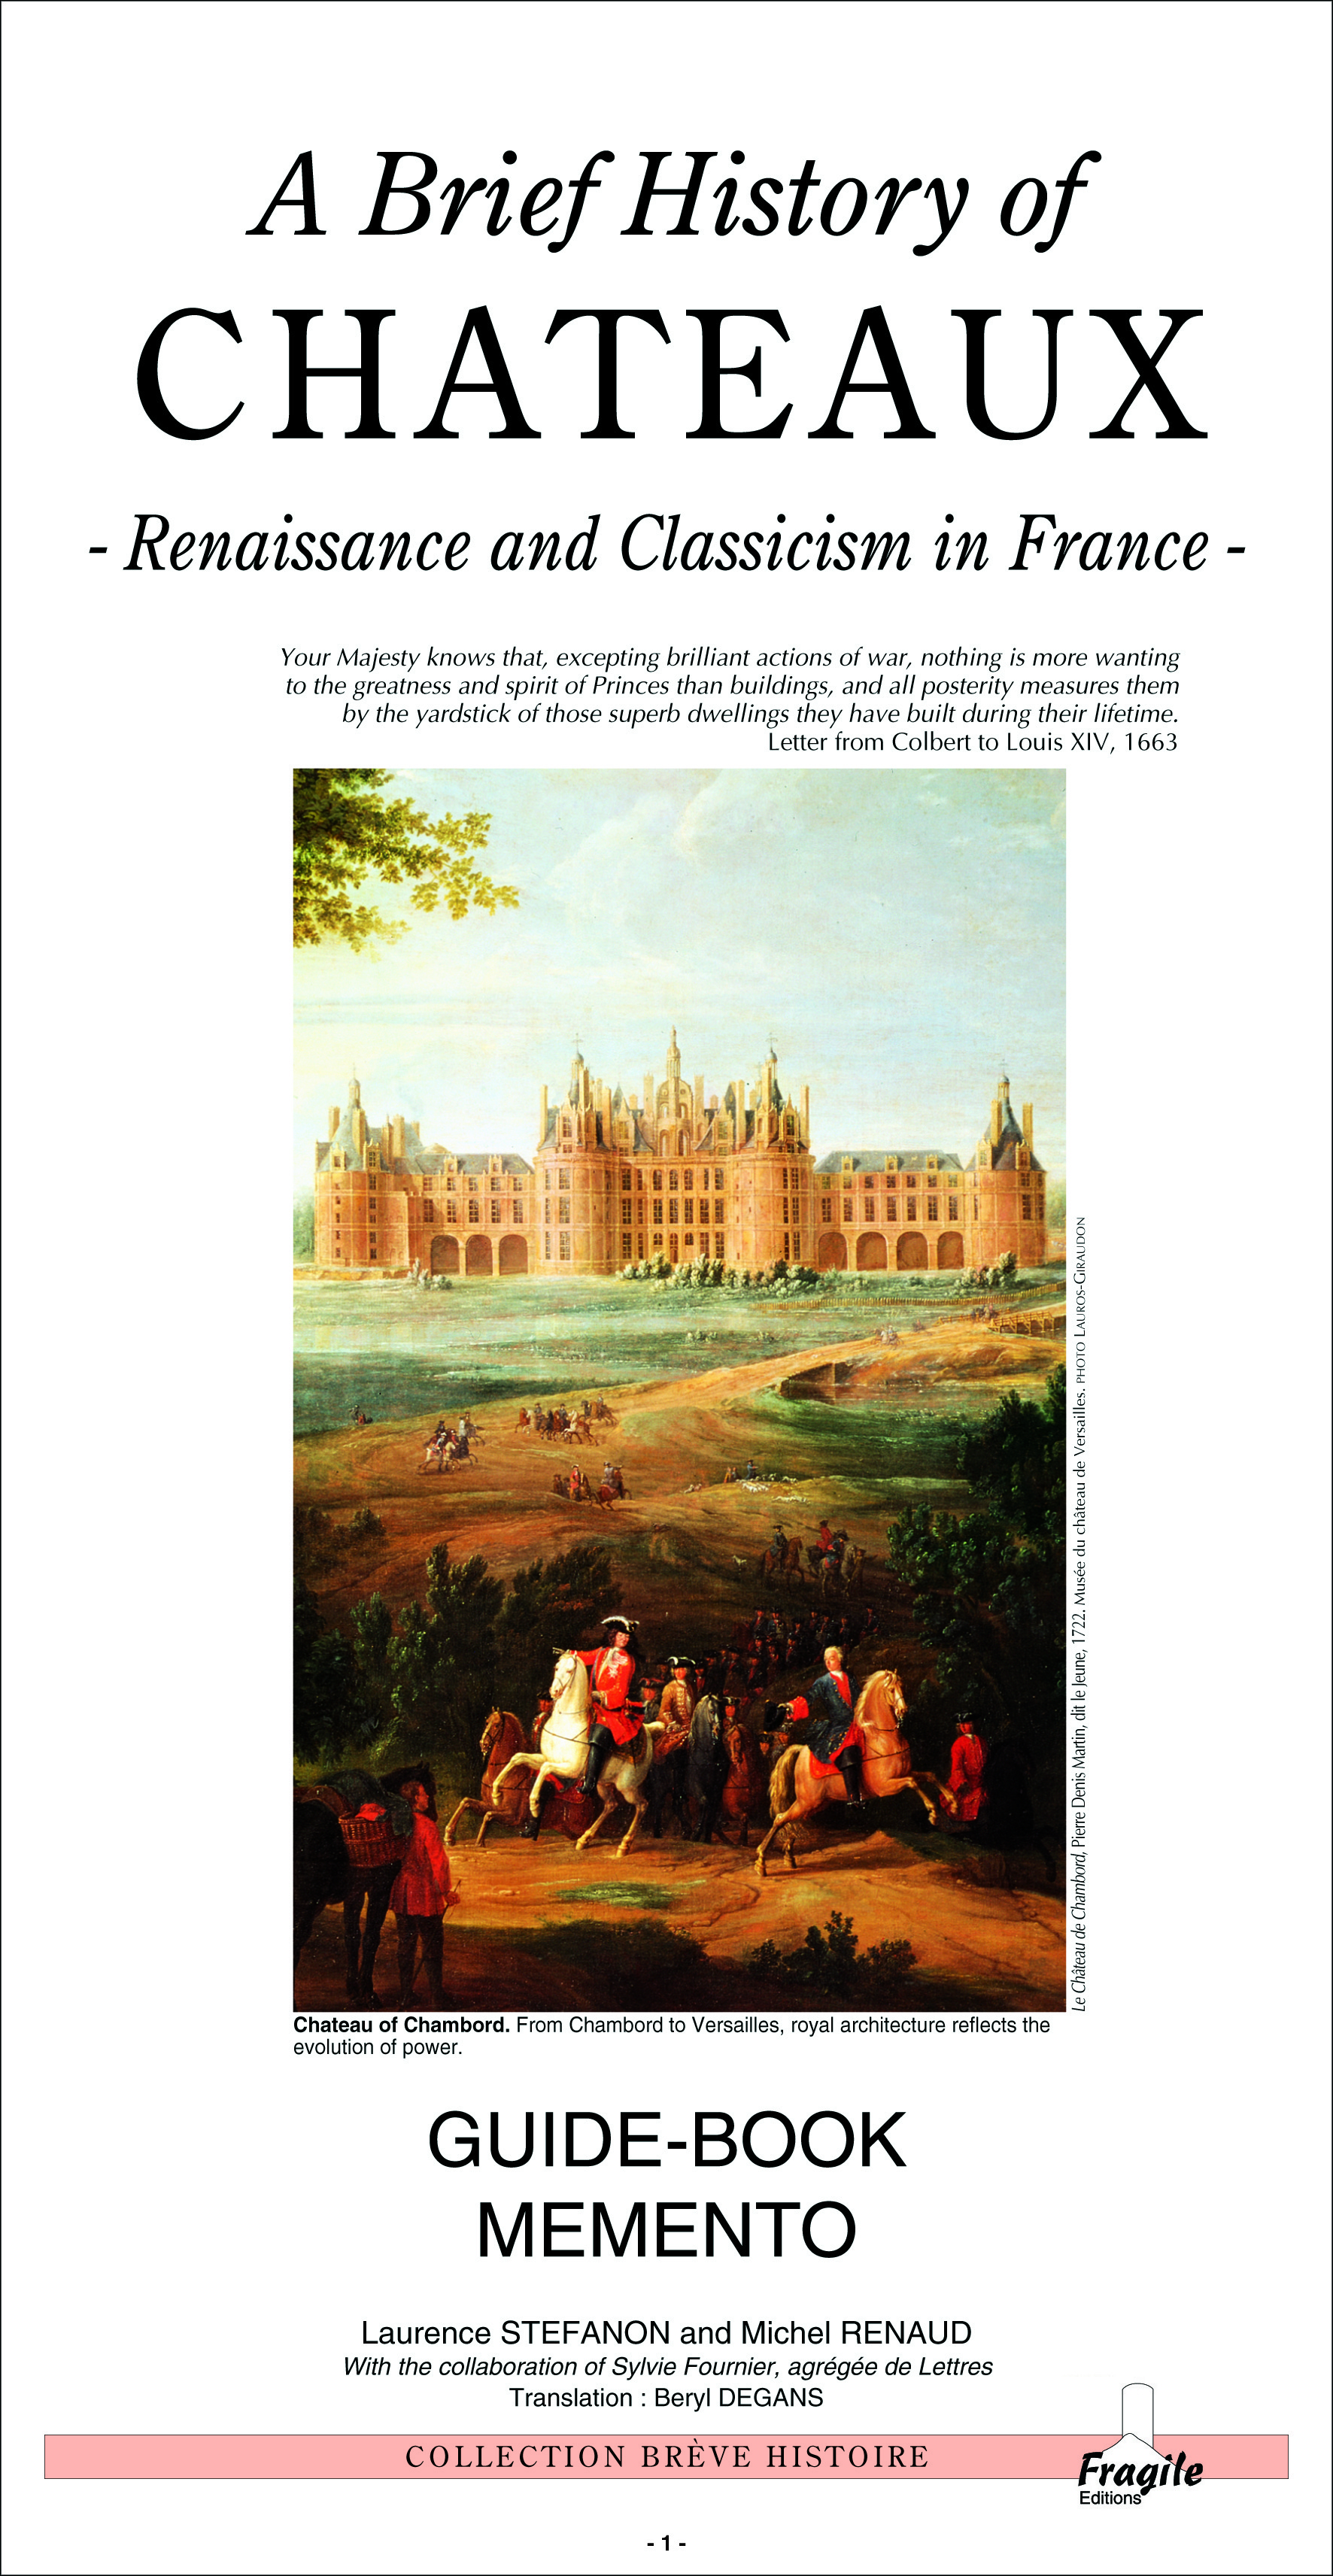 A BRIEF HISTORY OF CHATEAUX, RENAISSANCE AND CLASSICISM IN FRANCE